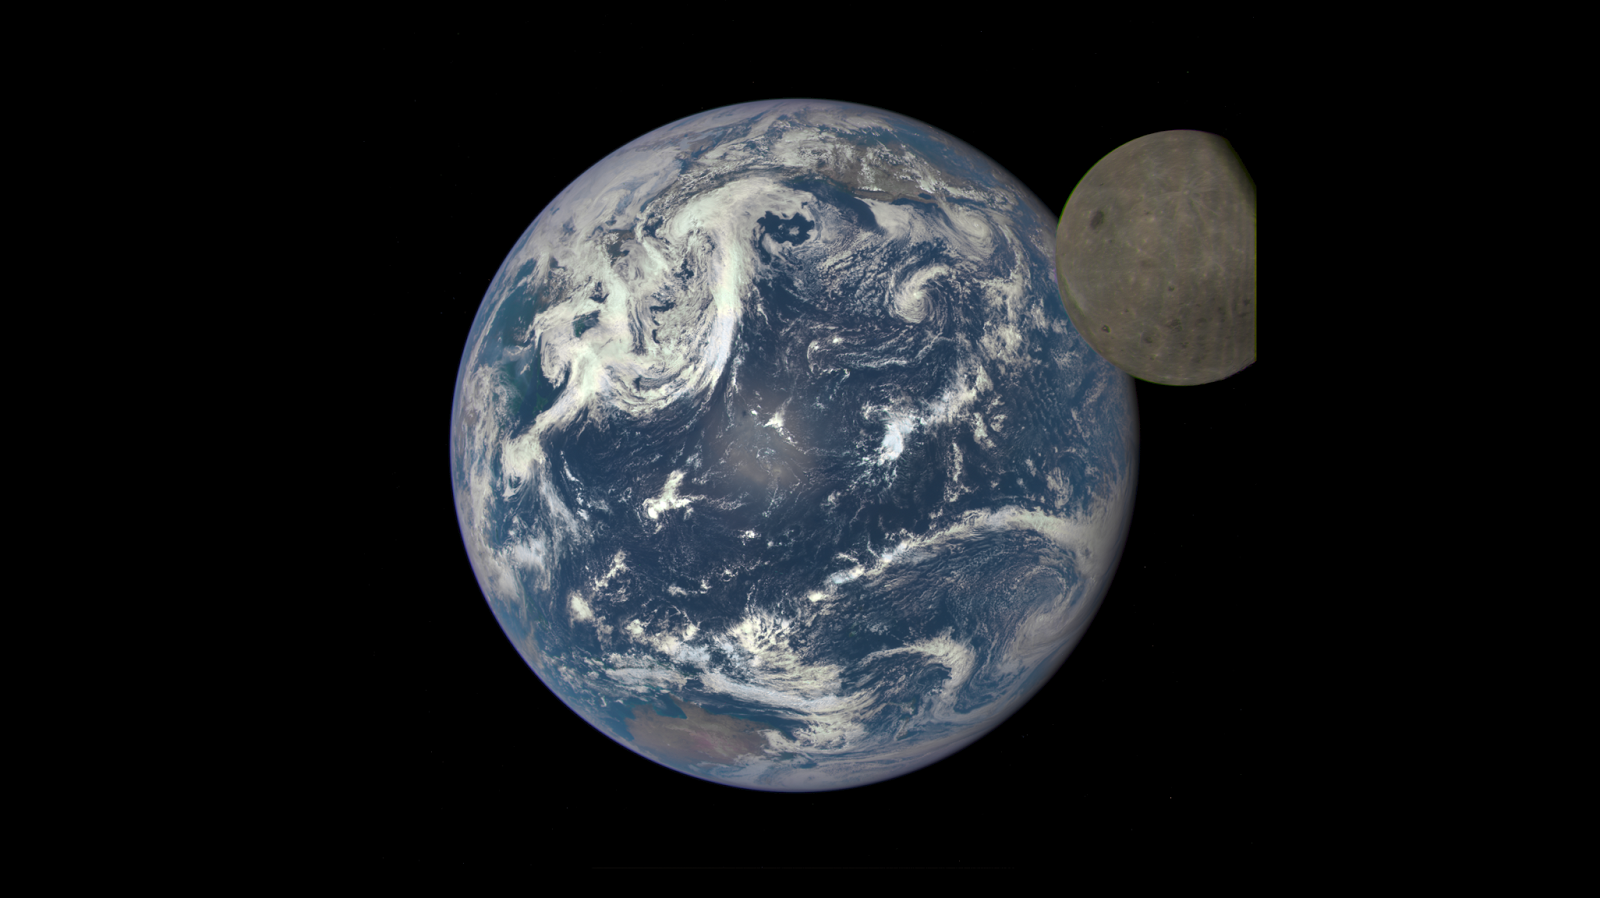 Earth and the far side of the Moon seen by DSCOVR